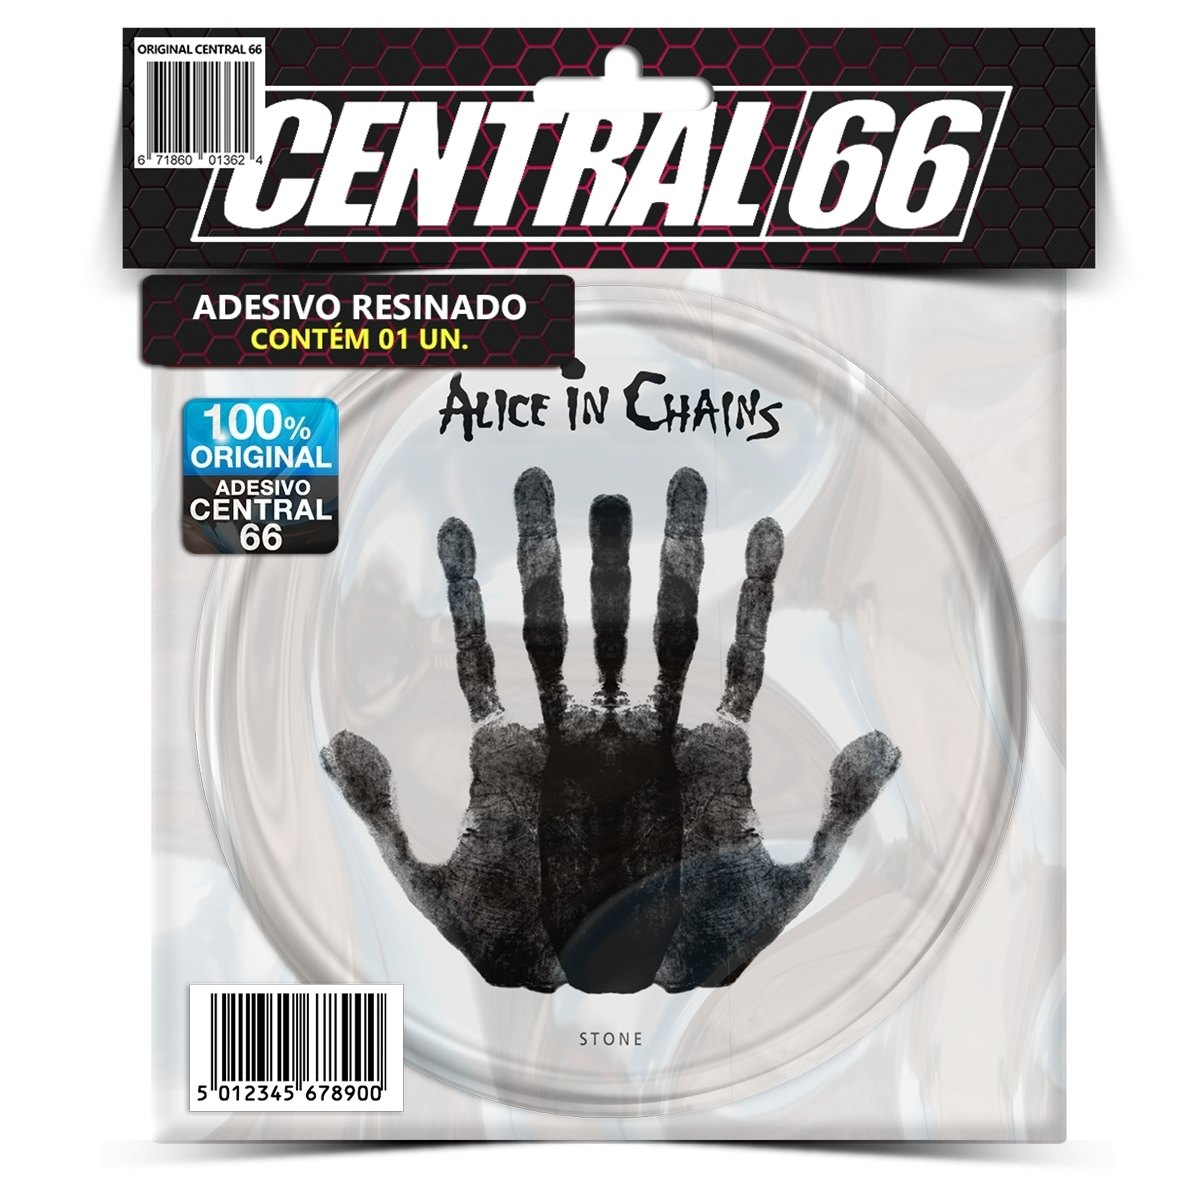 Adesivo Redondo Alice in Chains Stone – Central 66